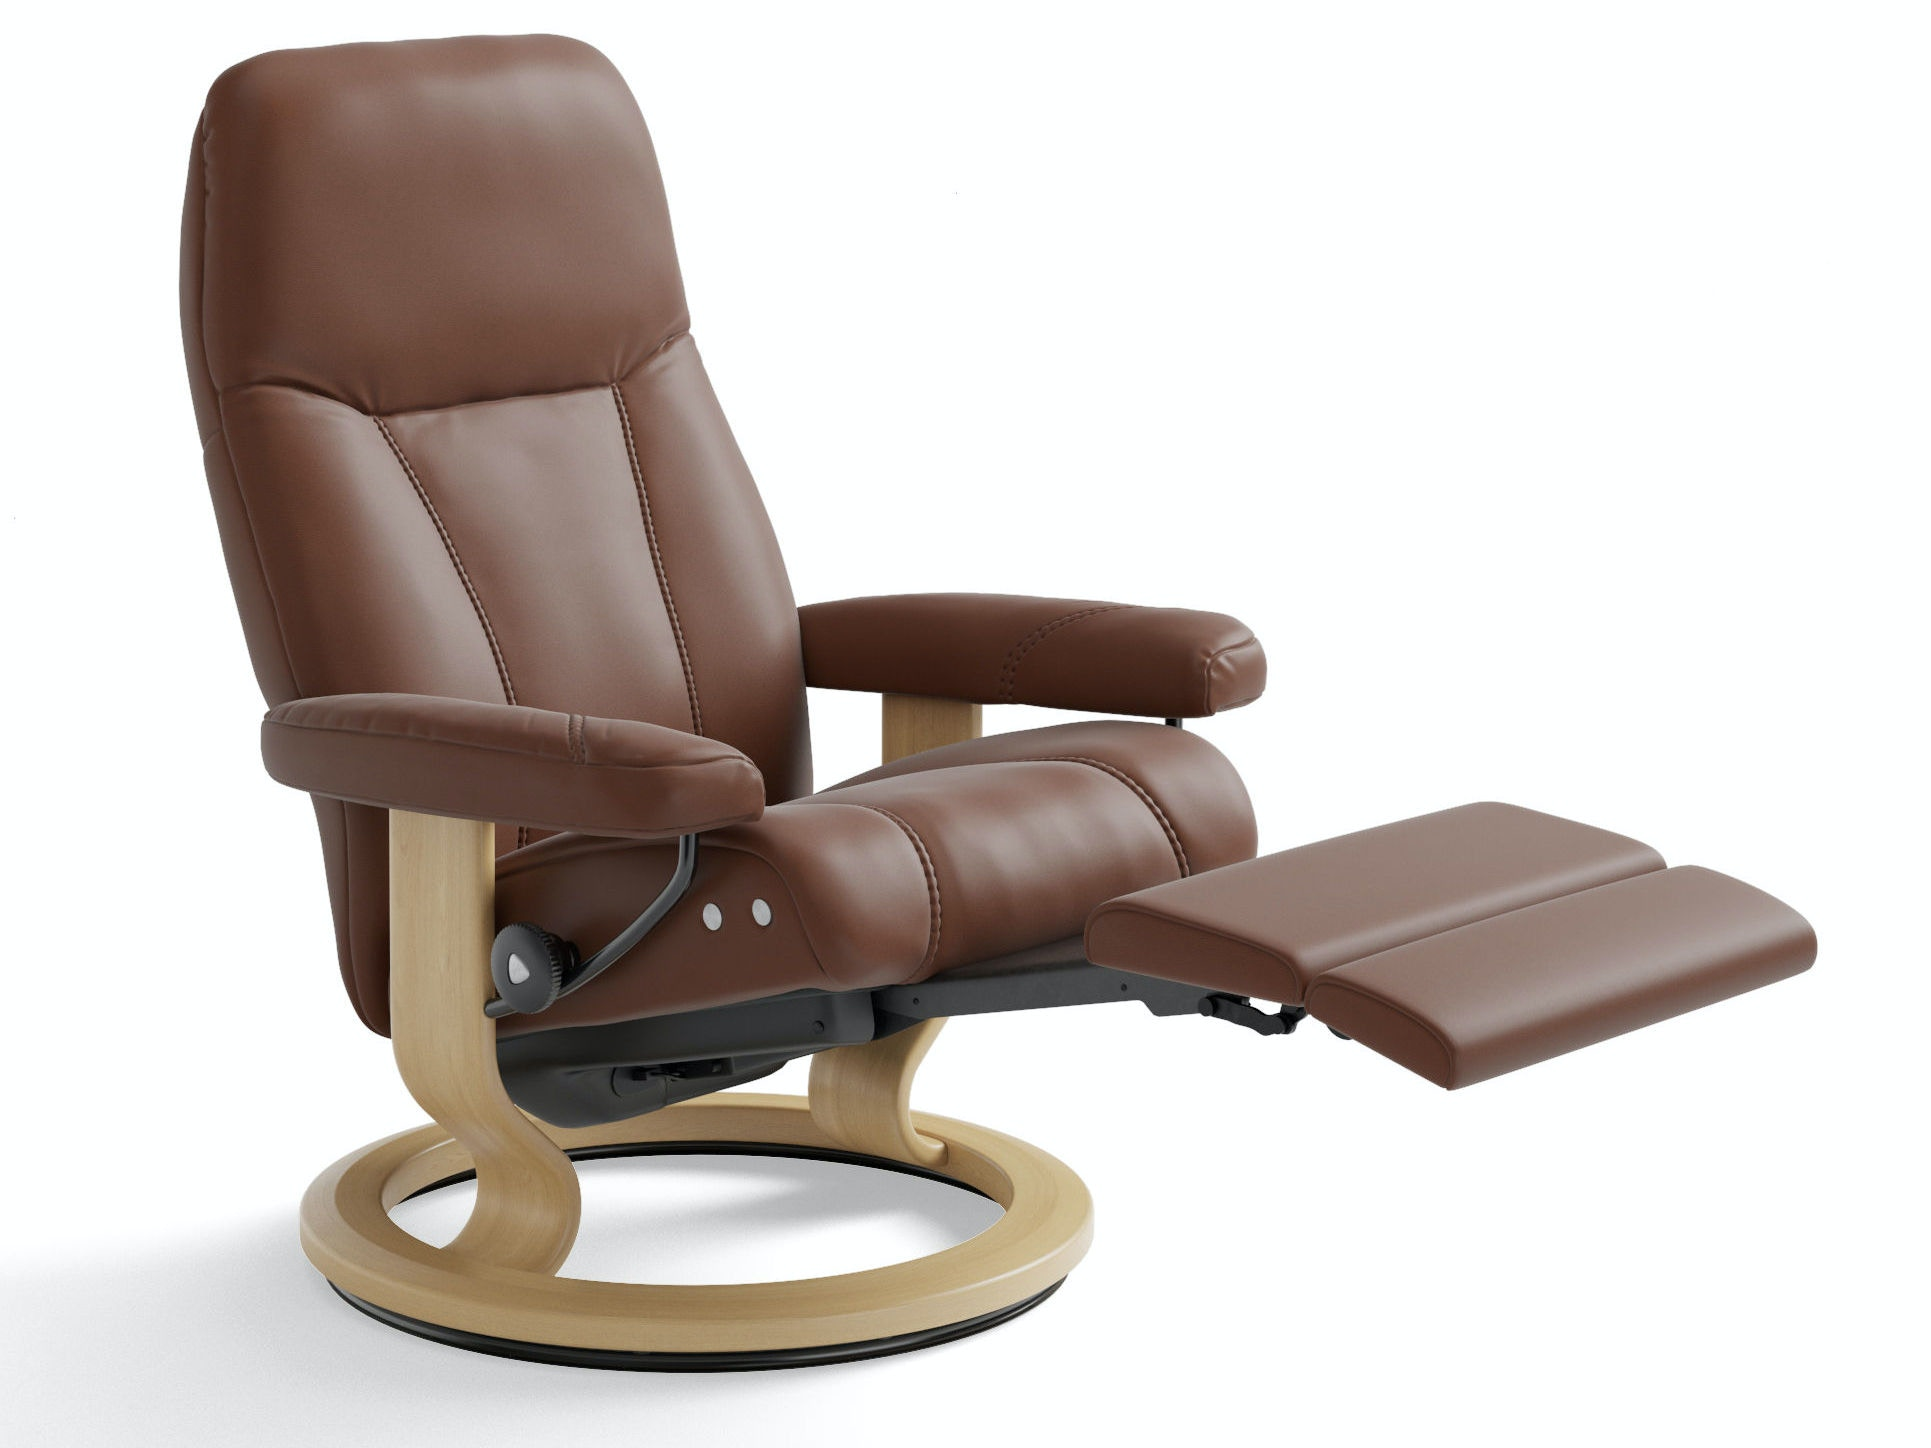 1005715  sc 1 st  Galeries Acadiana & Stressless by Ekornes Furniture - Galeries Acadiana - Baton Rouge ... islam-shia.org